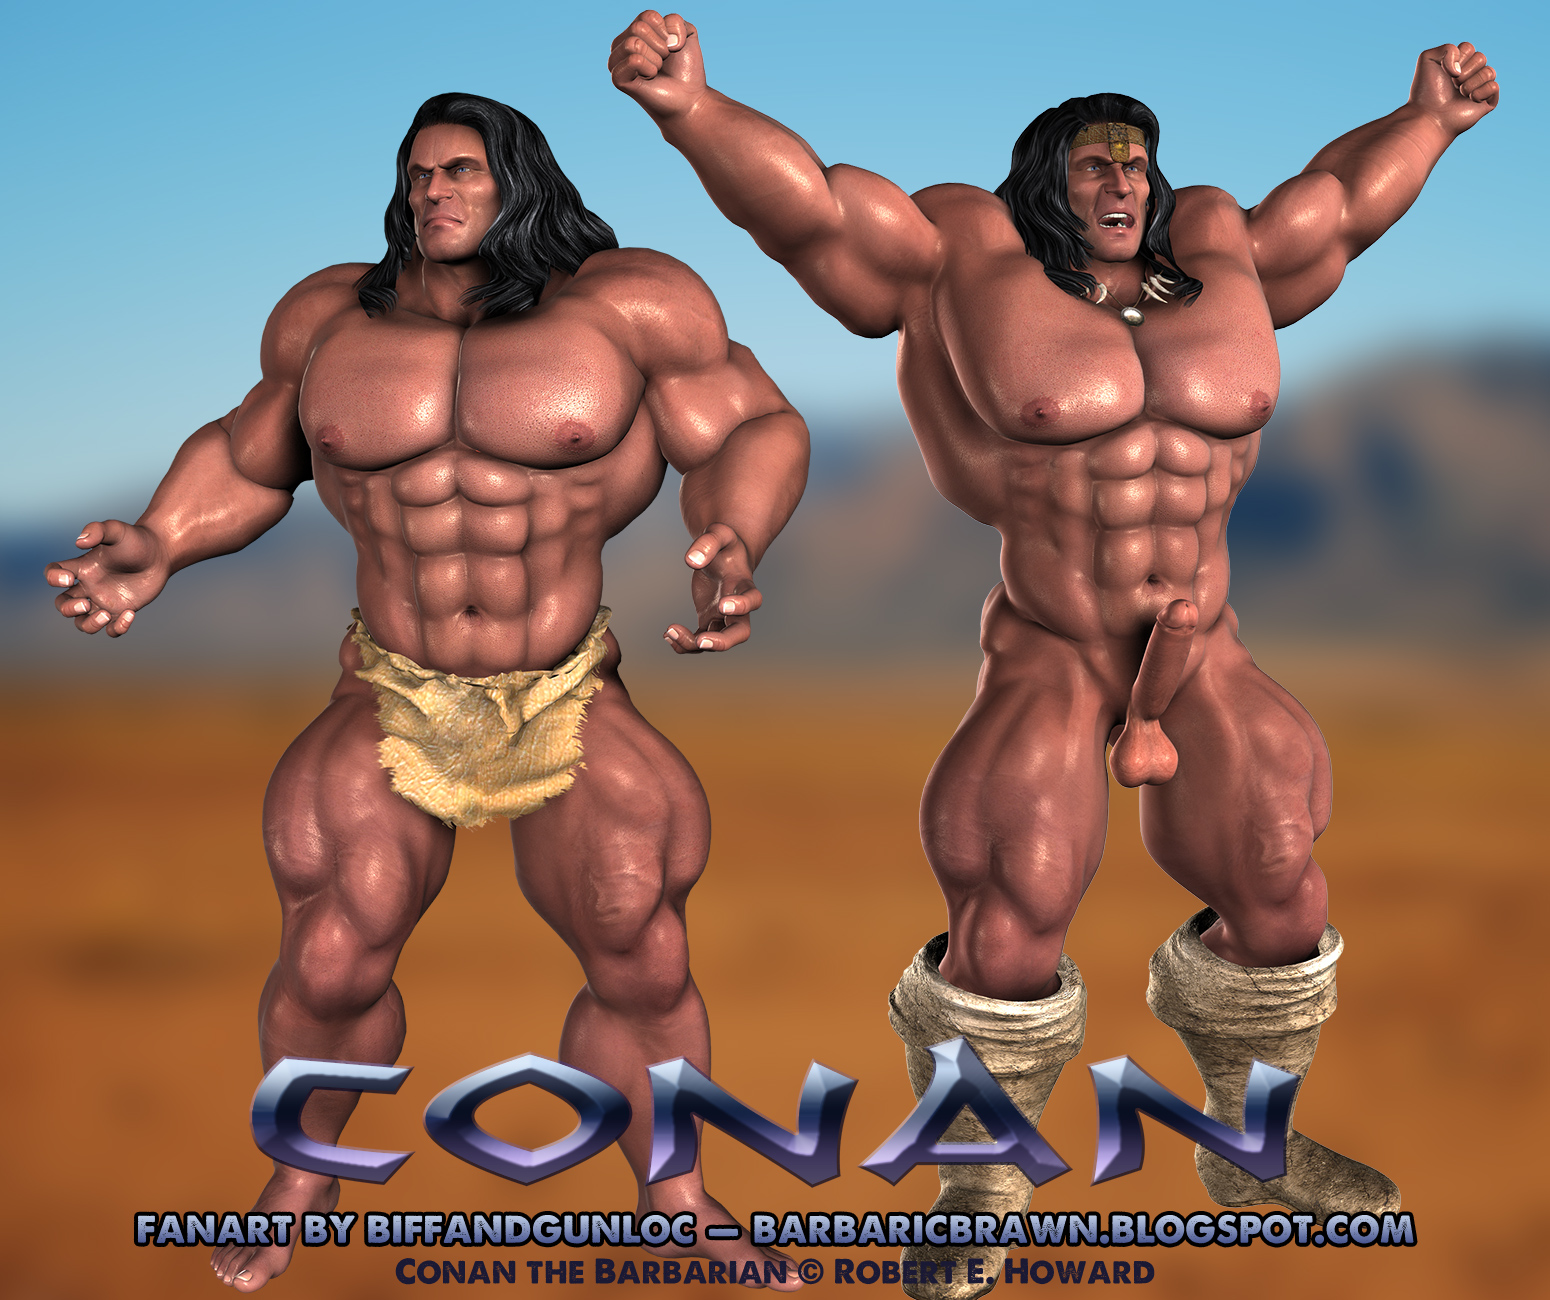 Conan the barbarian cartoon porn naked pics